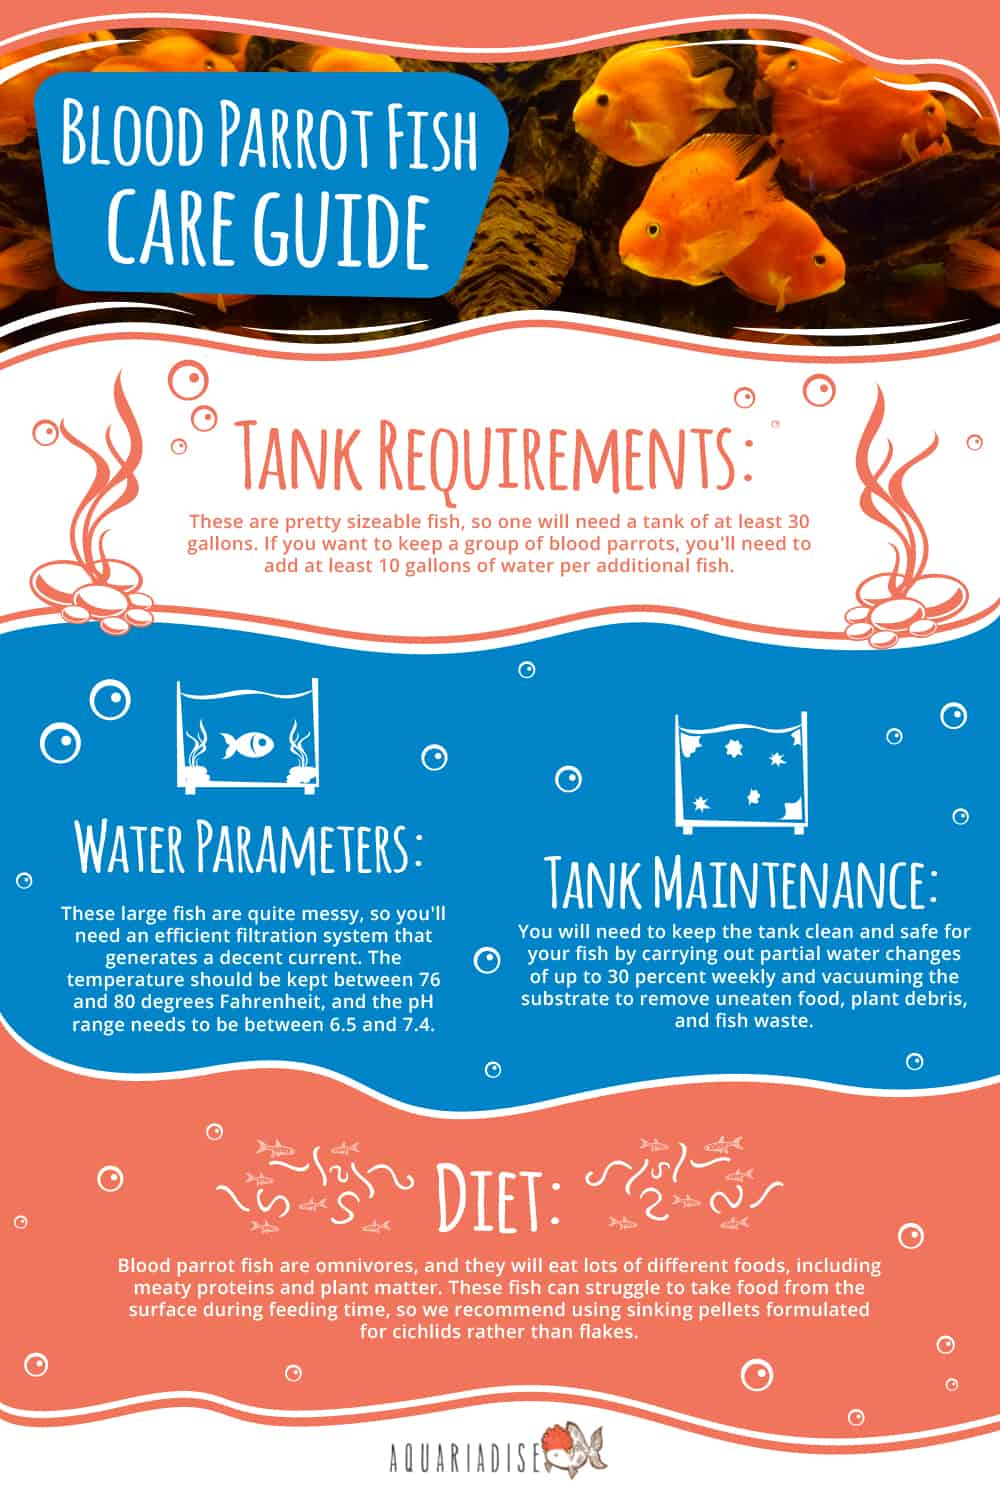 Blood Parrot Fish Care Guide Infographic